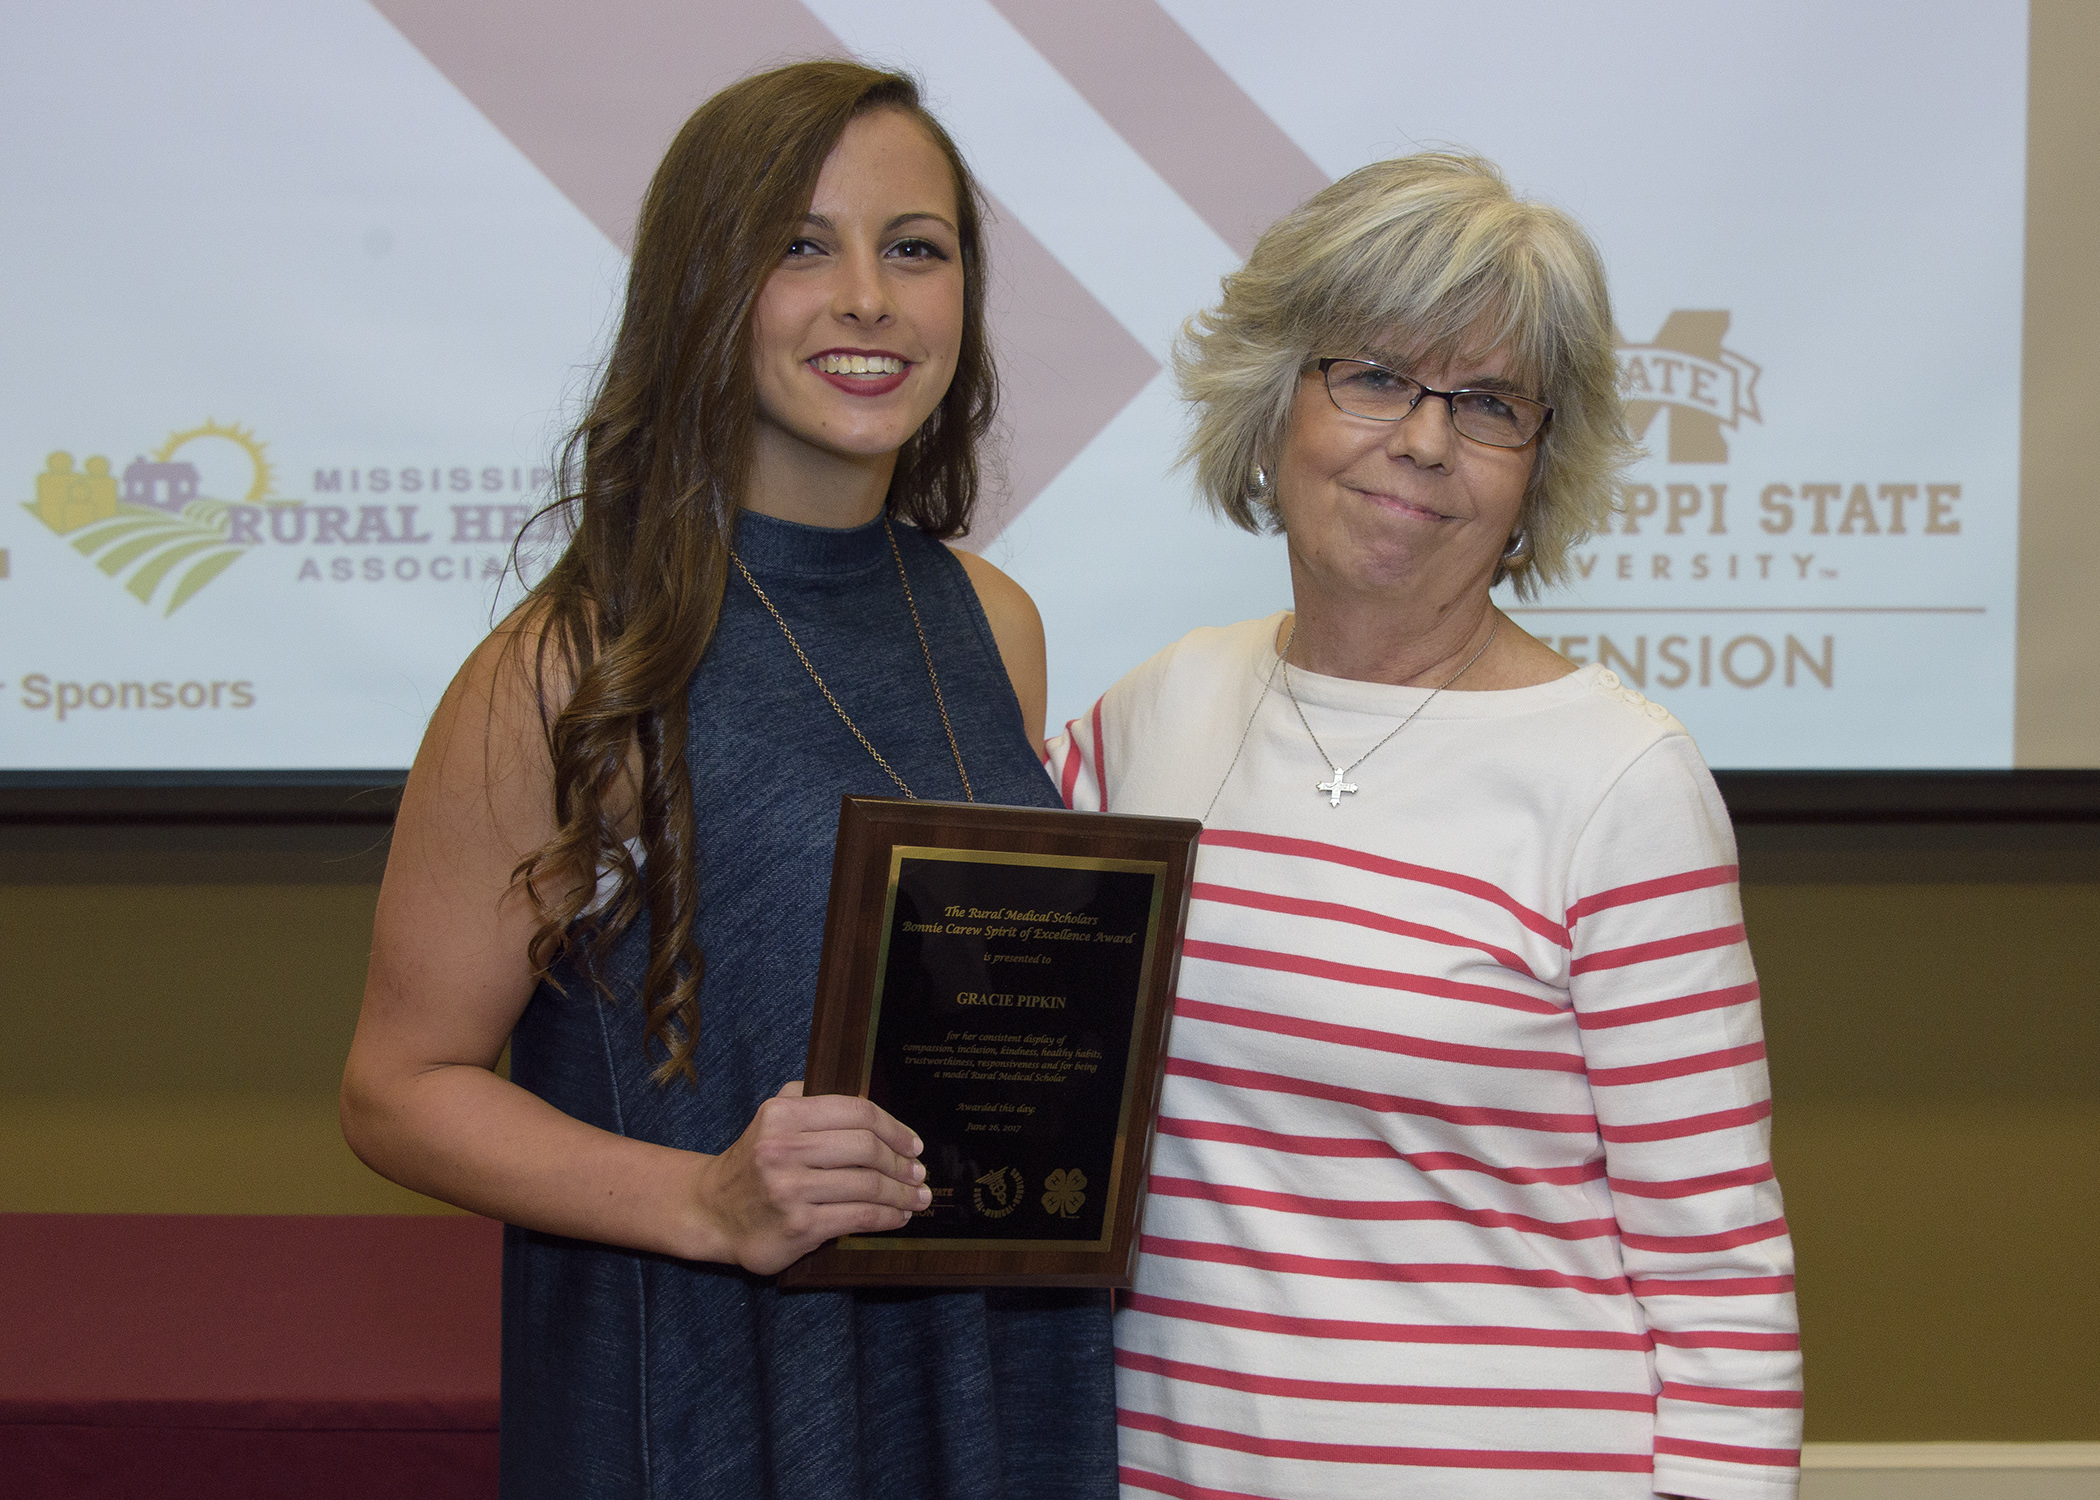 Bonnie Carew with the 2017 RMS Bonnie Carew Spirit of Excellence Award recipient, Gracie Pipkin.